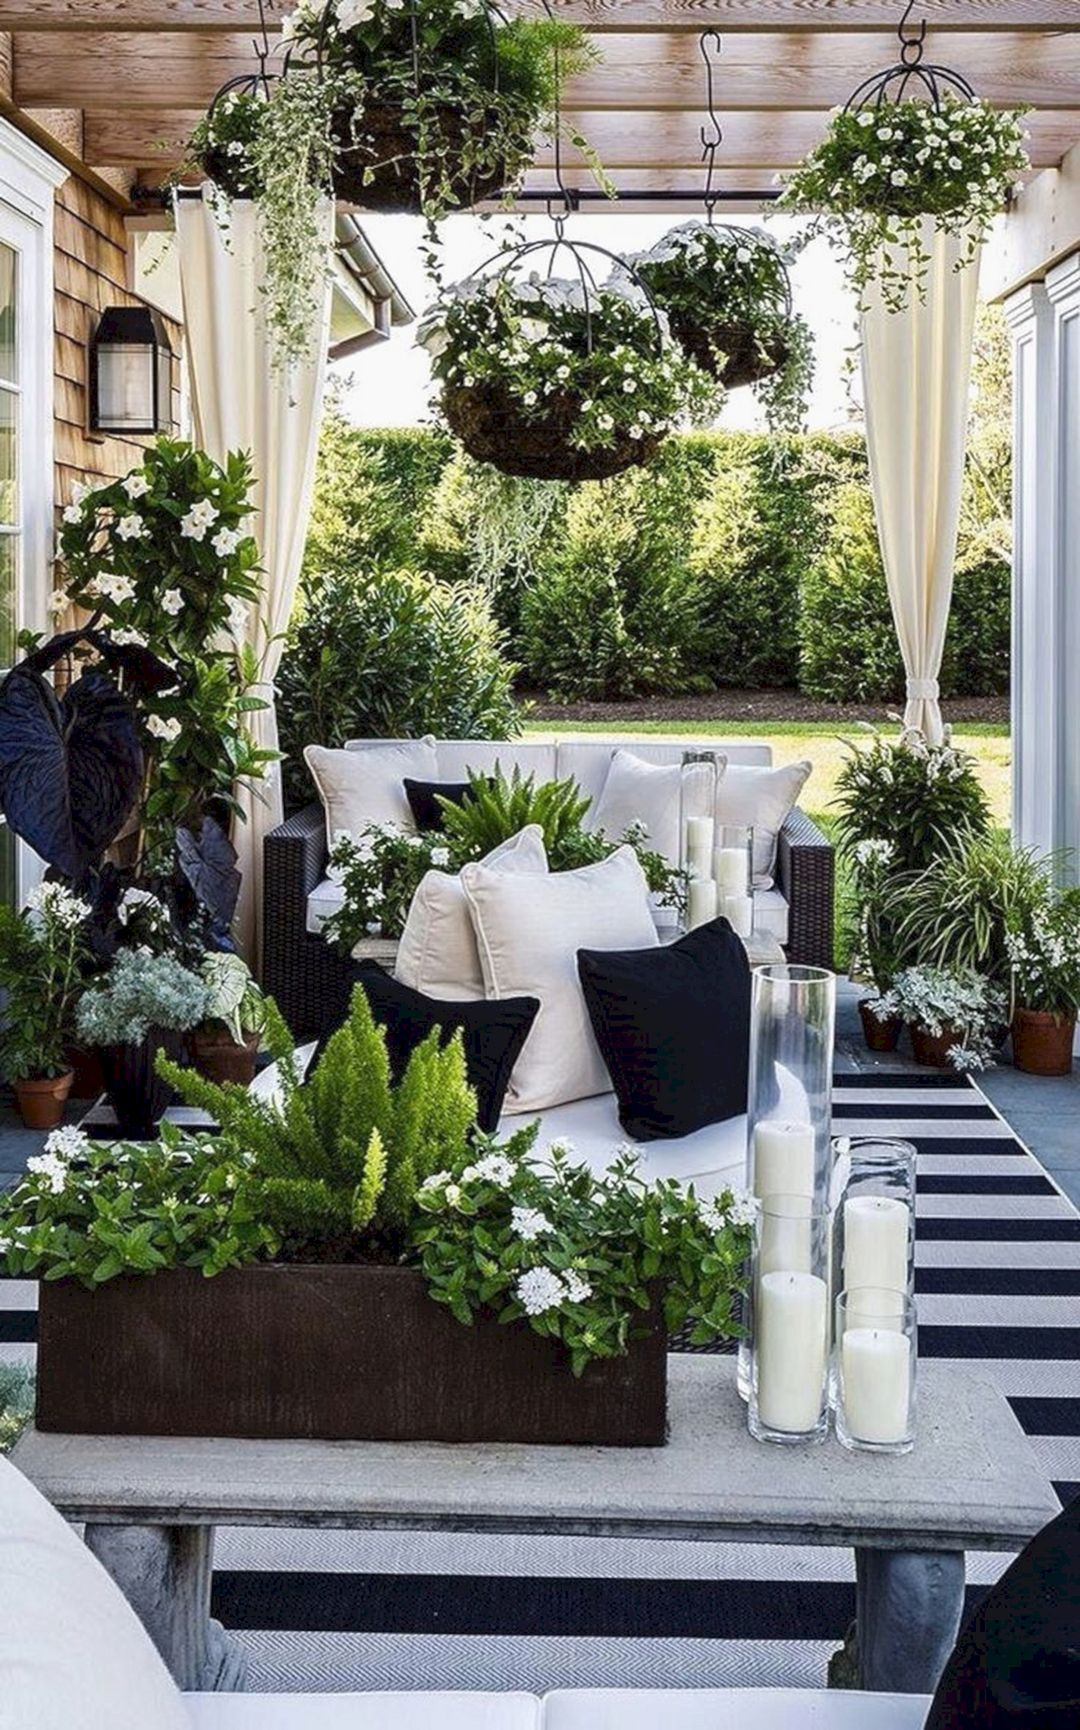 Patio Design With Best Hanging Plants